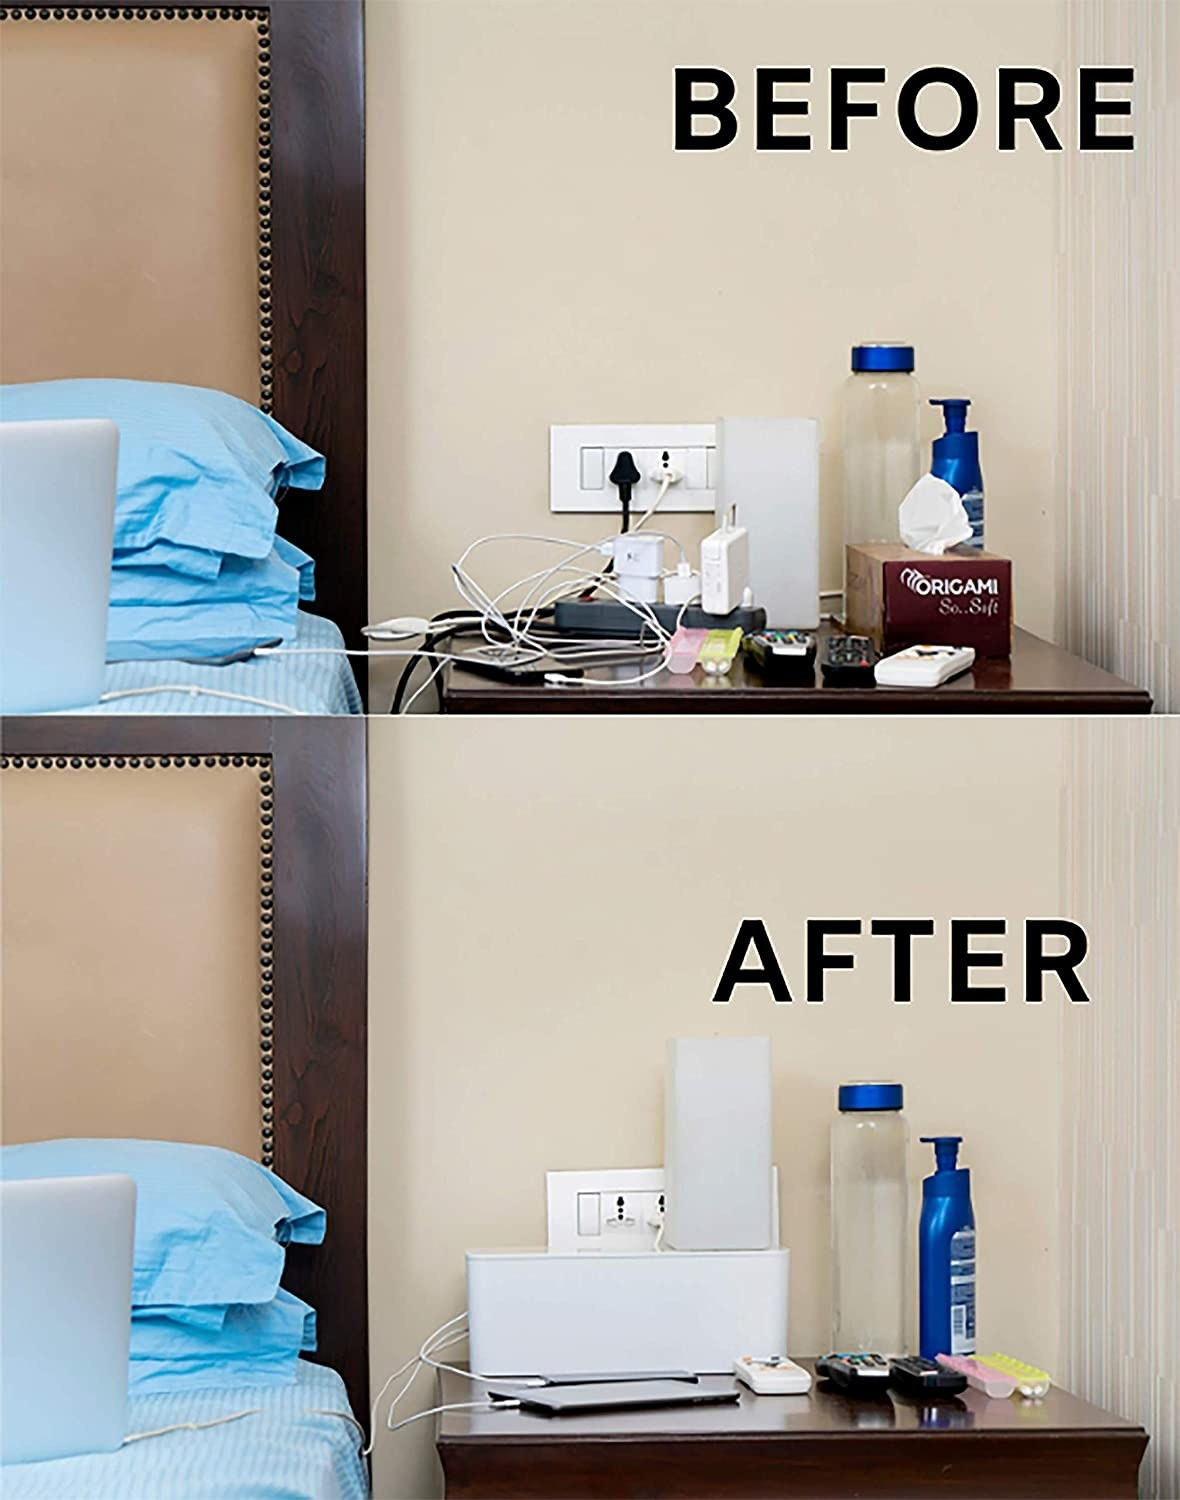 A split before and after image. The before image consists of messy wires on a bedside table and the after image is neatly concealed wires.